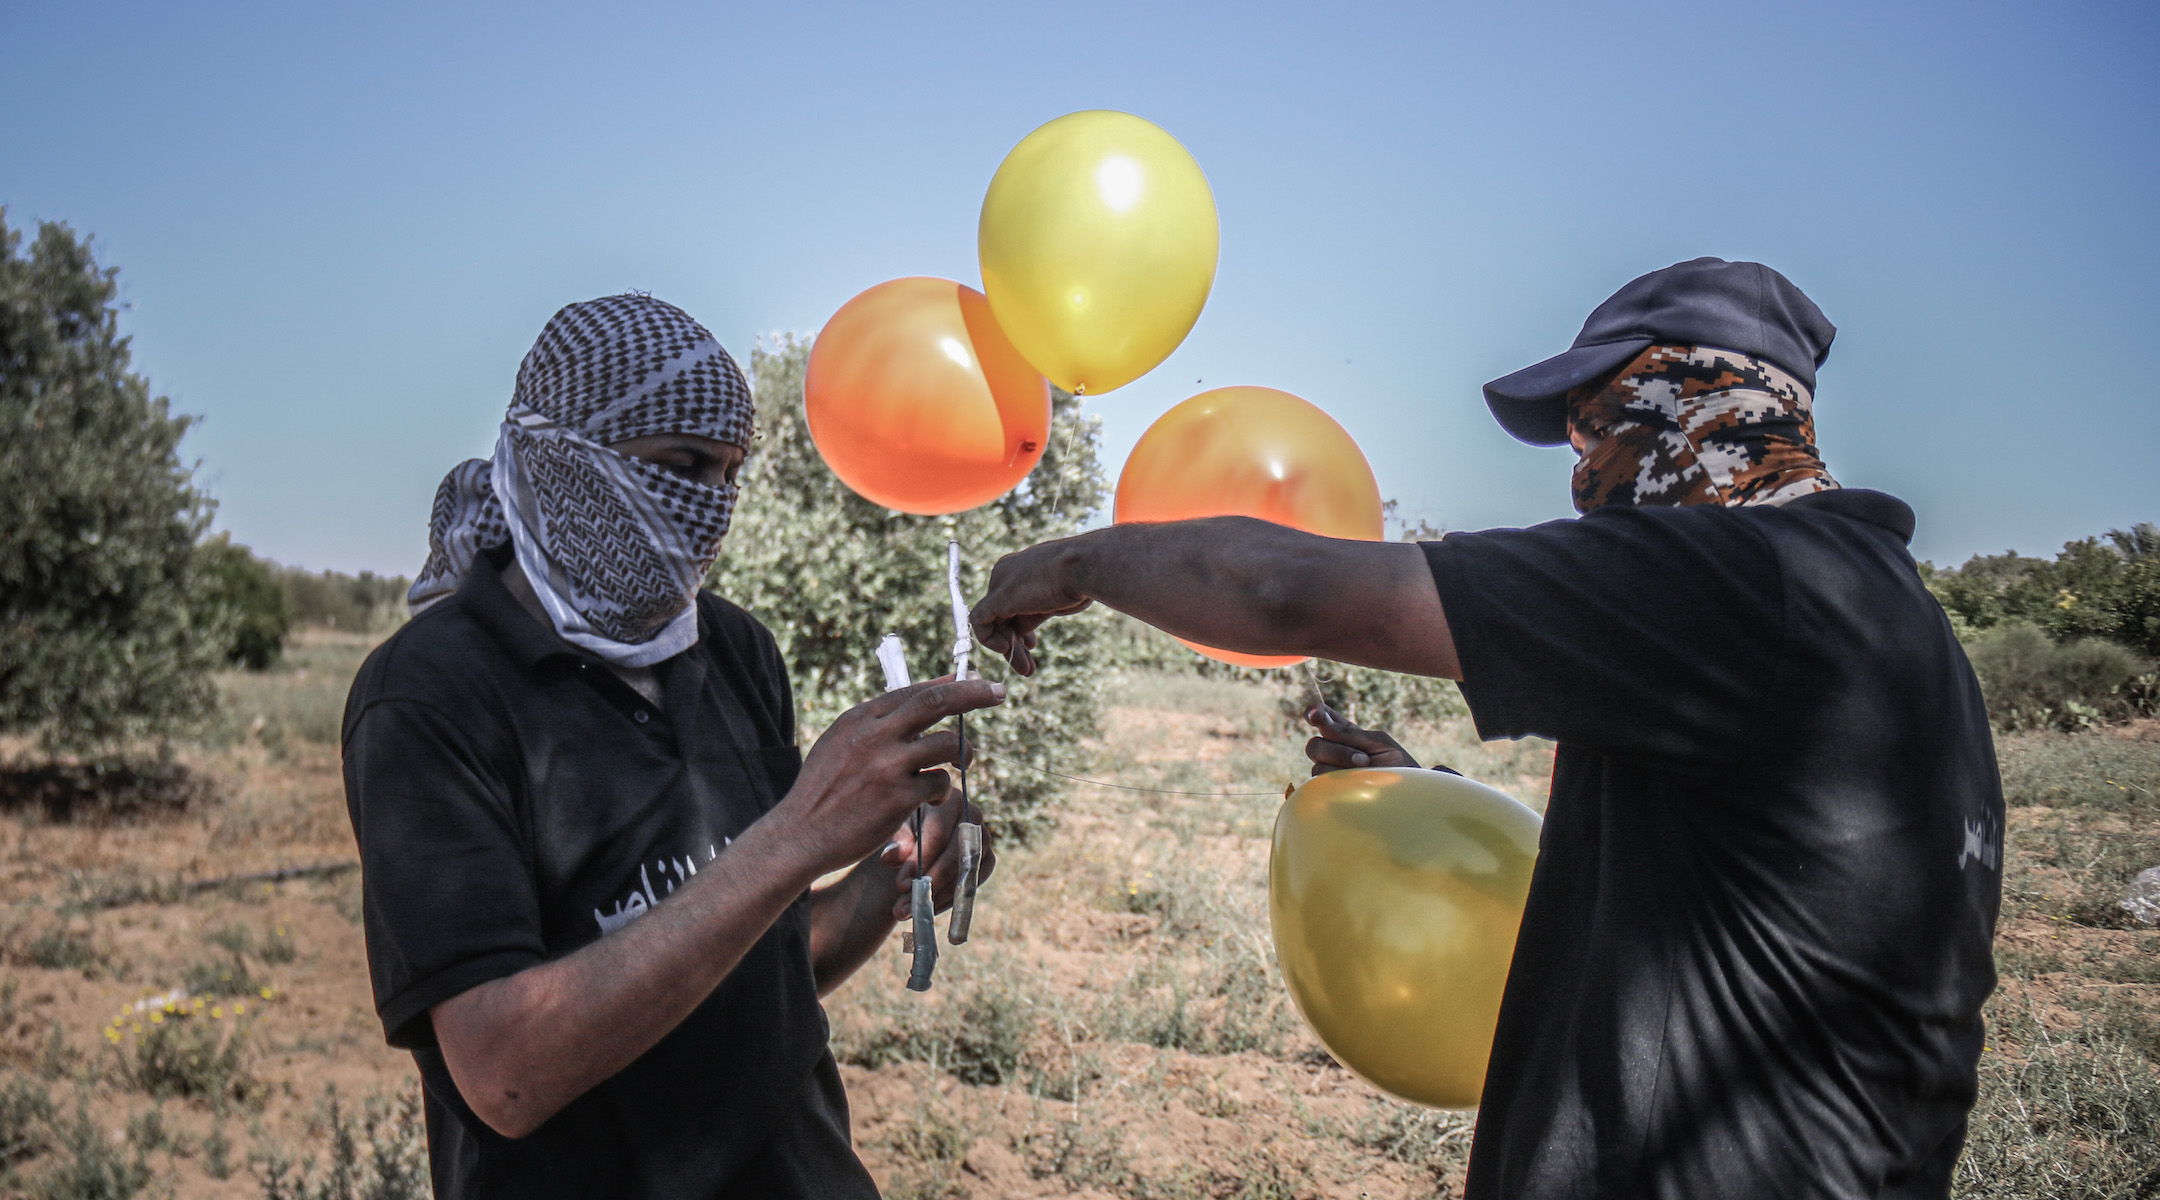 Israel strikes more Hamas sites as incendiary balloons continue from Gaza